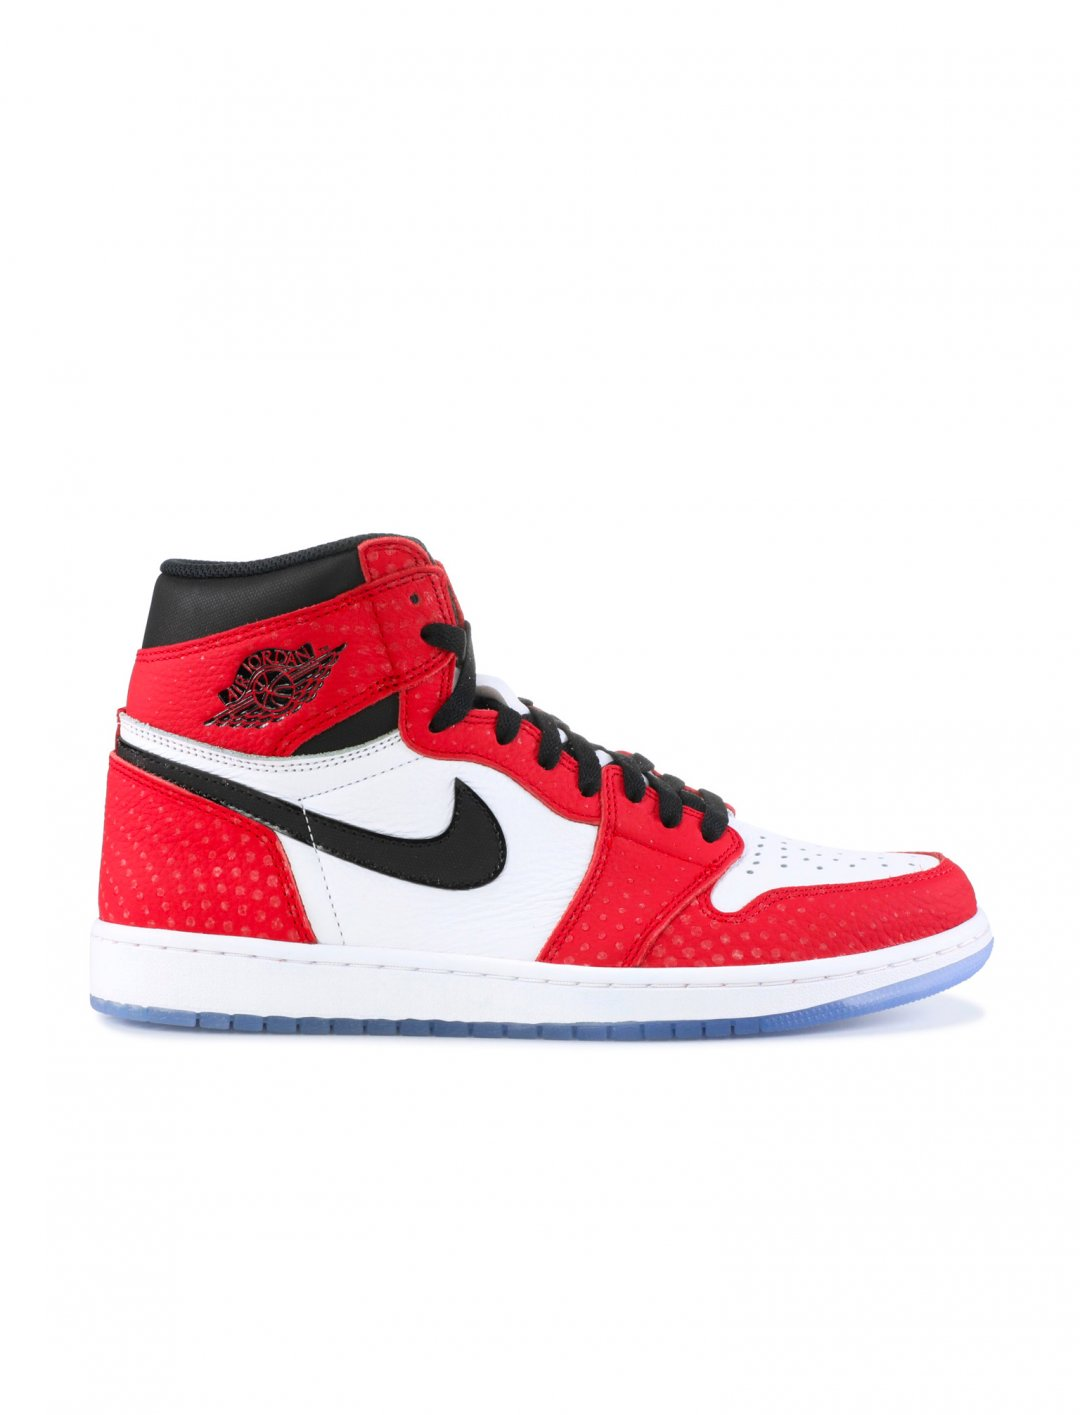 "Air Jordan 1 Retro 'Spiderman' {""id"":12,""product_section_id"":1,""name"":""Shoes"",""order"":12} Air Jordan"